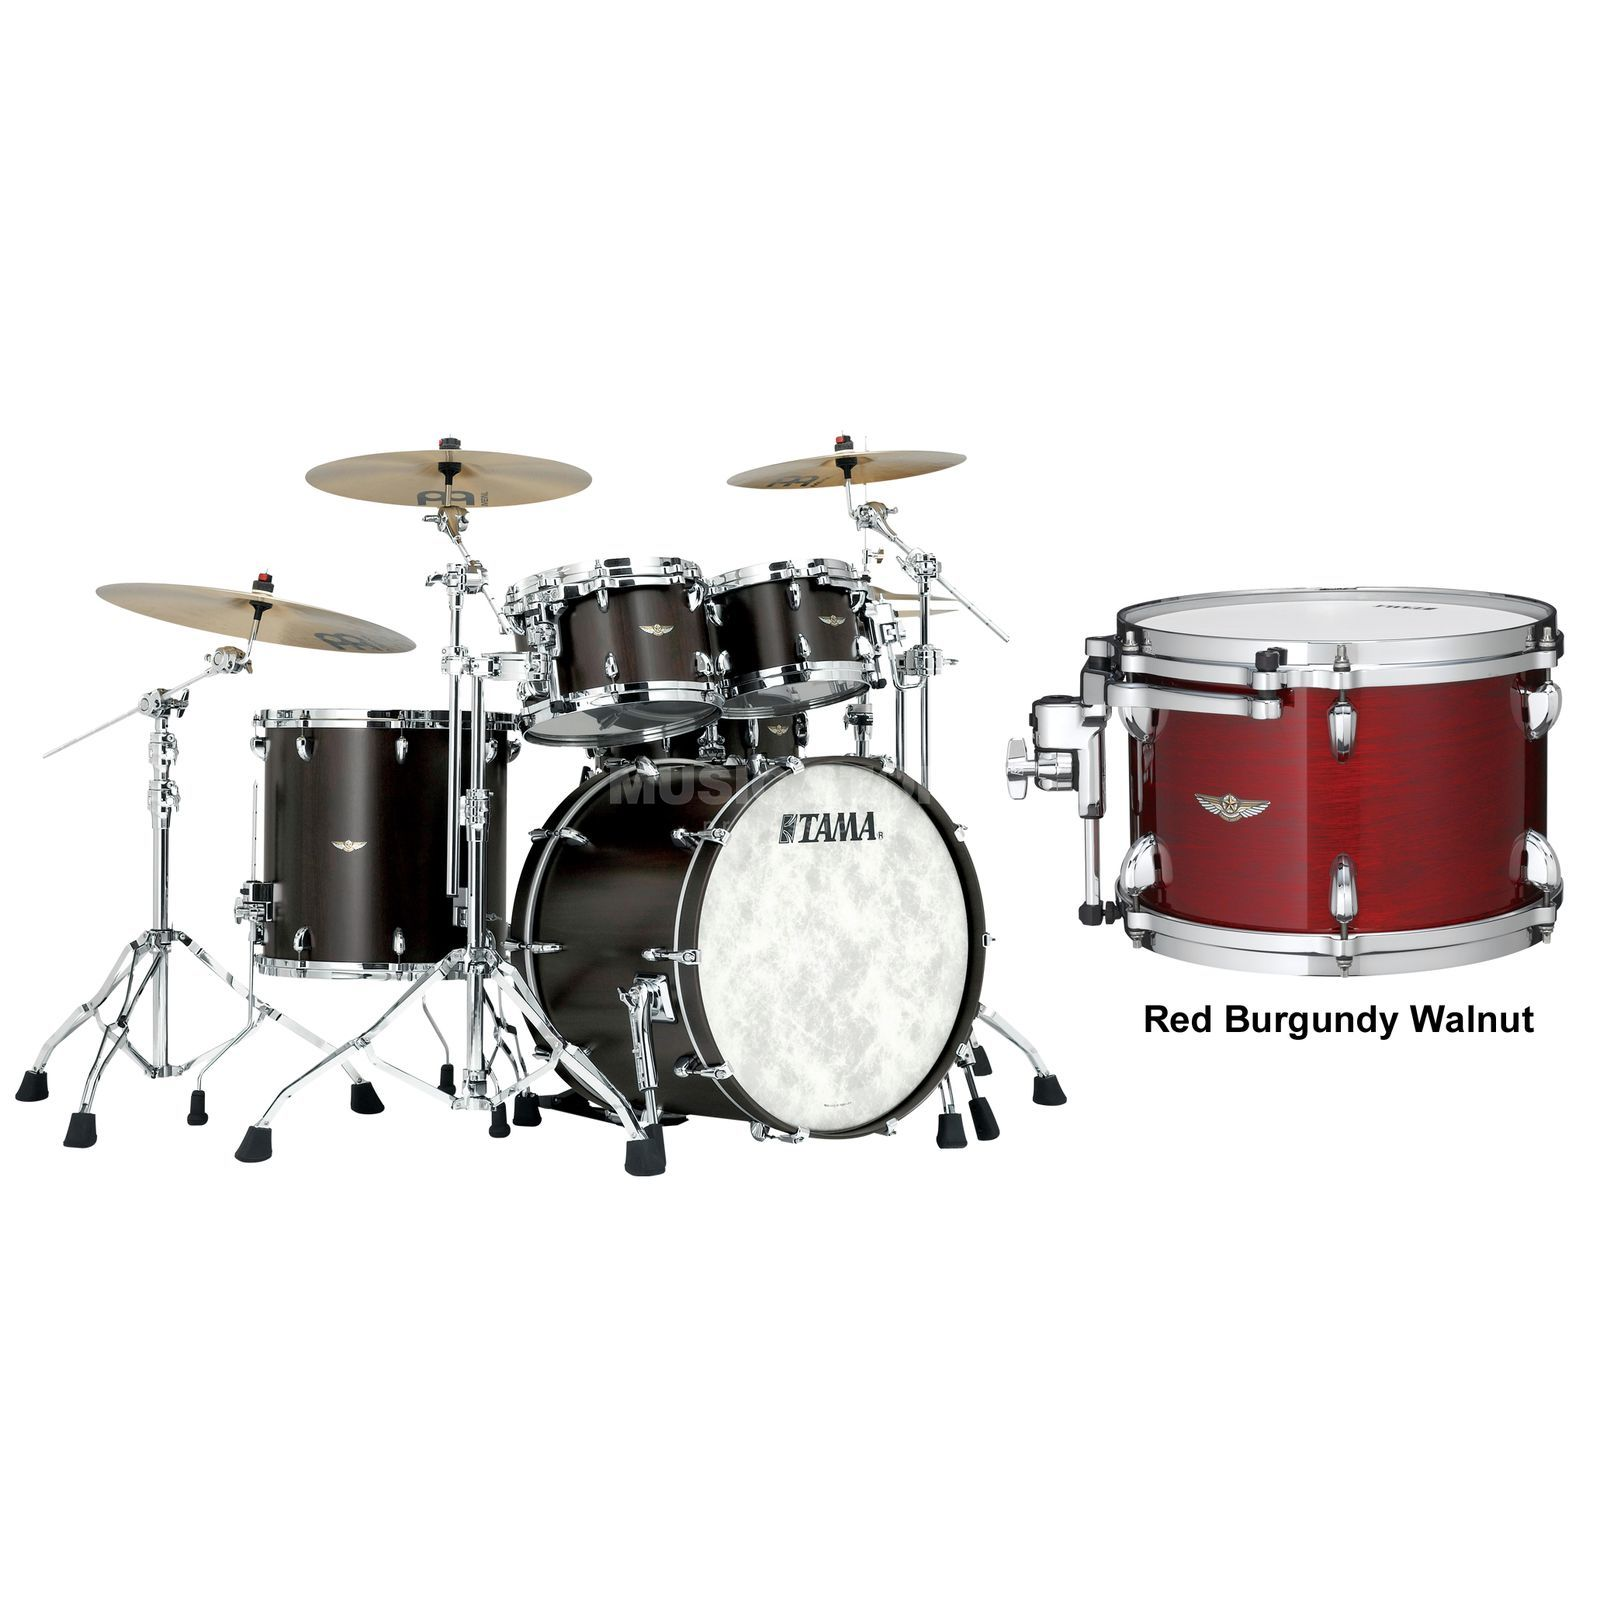 Tama Star Walnut ShellSet TW42RZS, Red Burgundy Walnut #RBW Produktbild